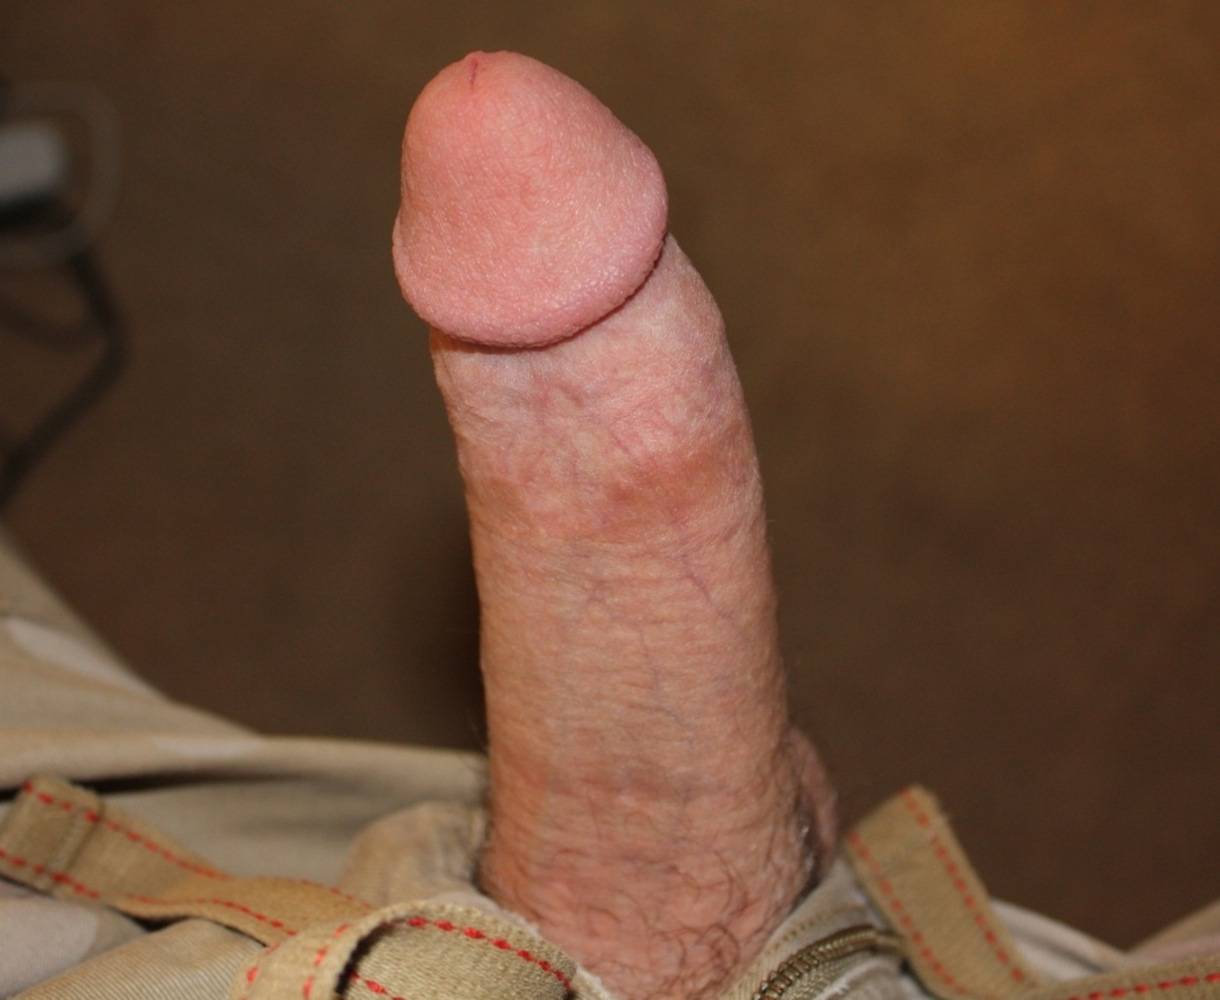 big fat dick pornstar jpg 853x1280